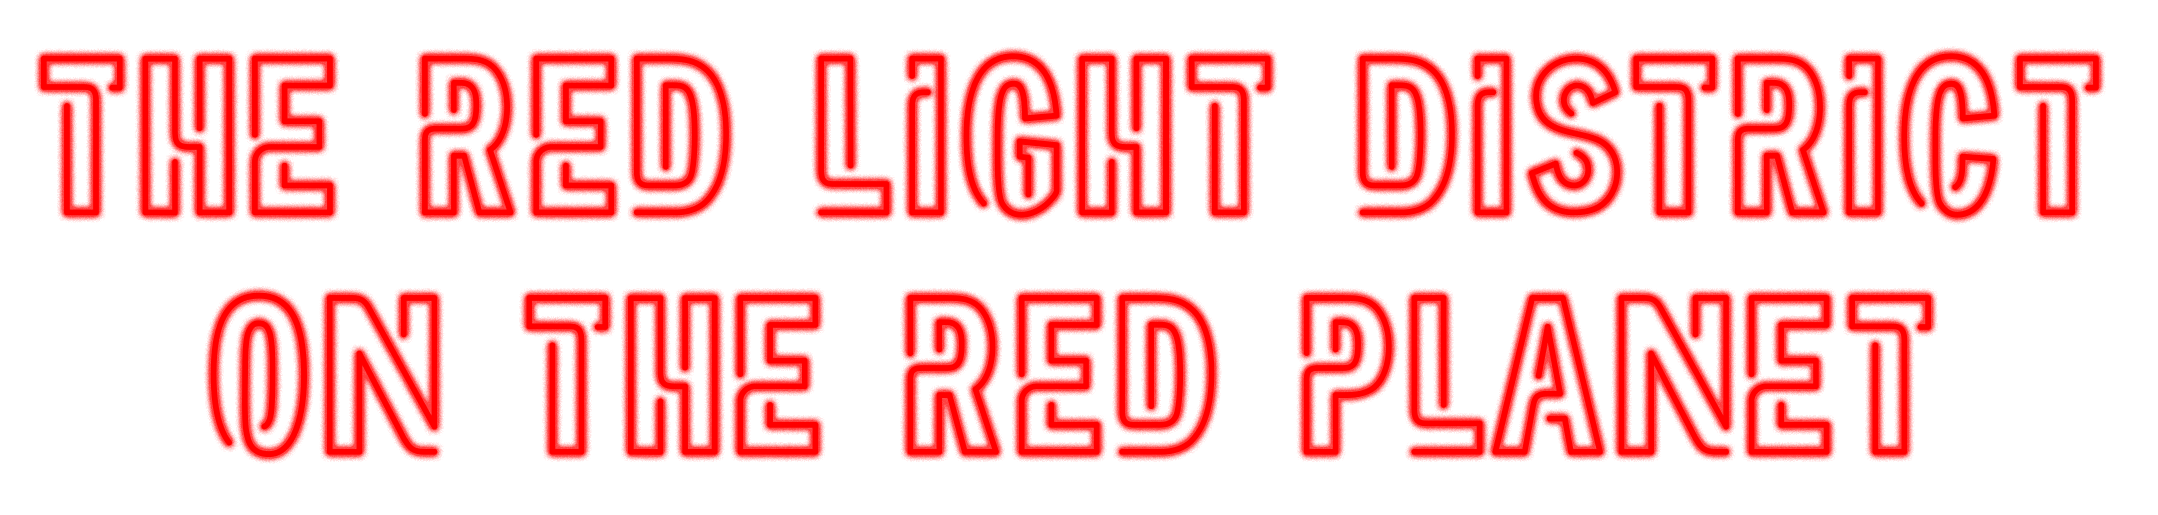 Red Ligth District.png